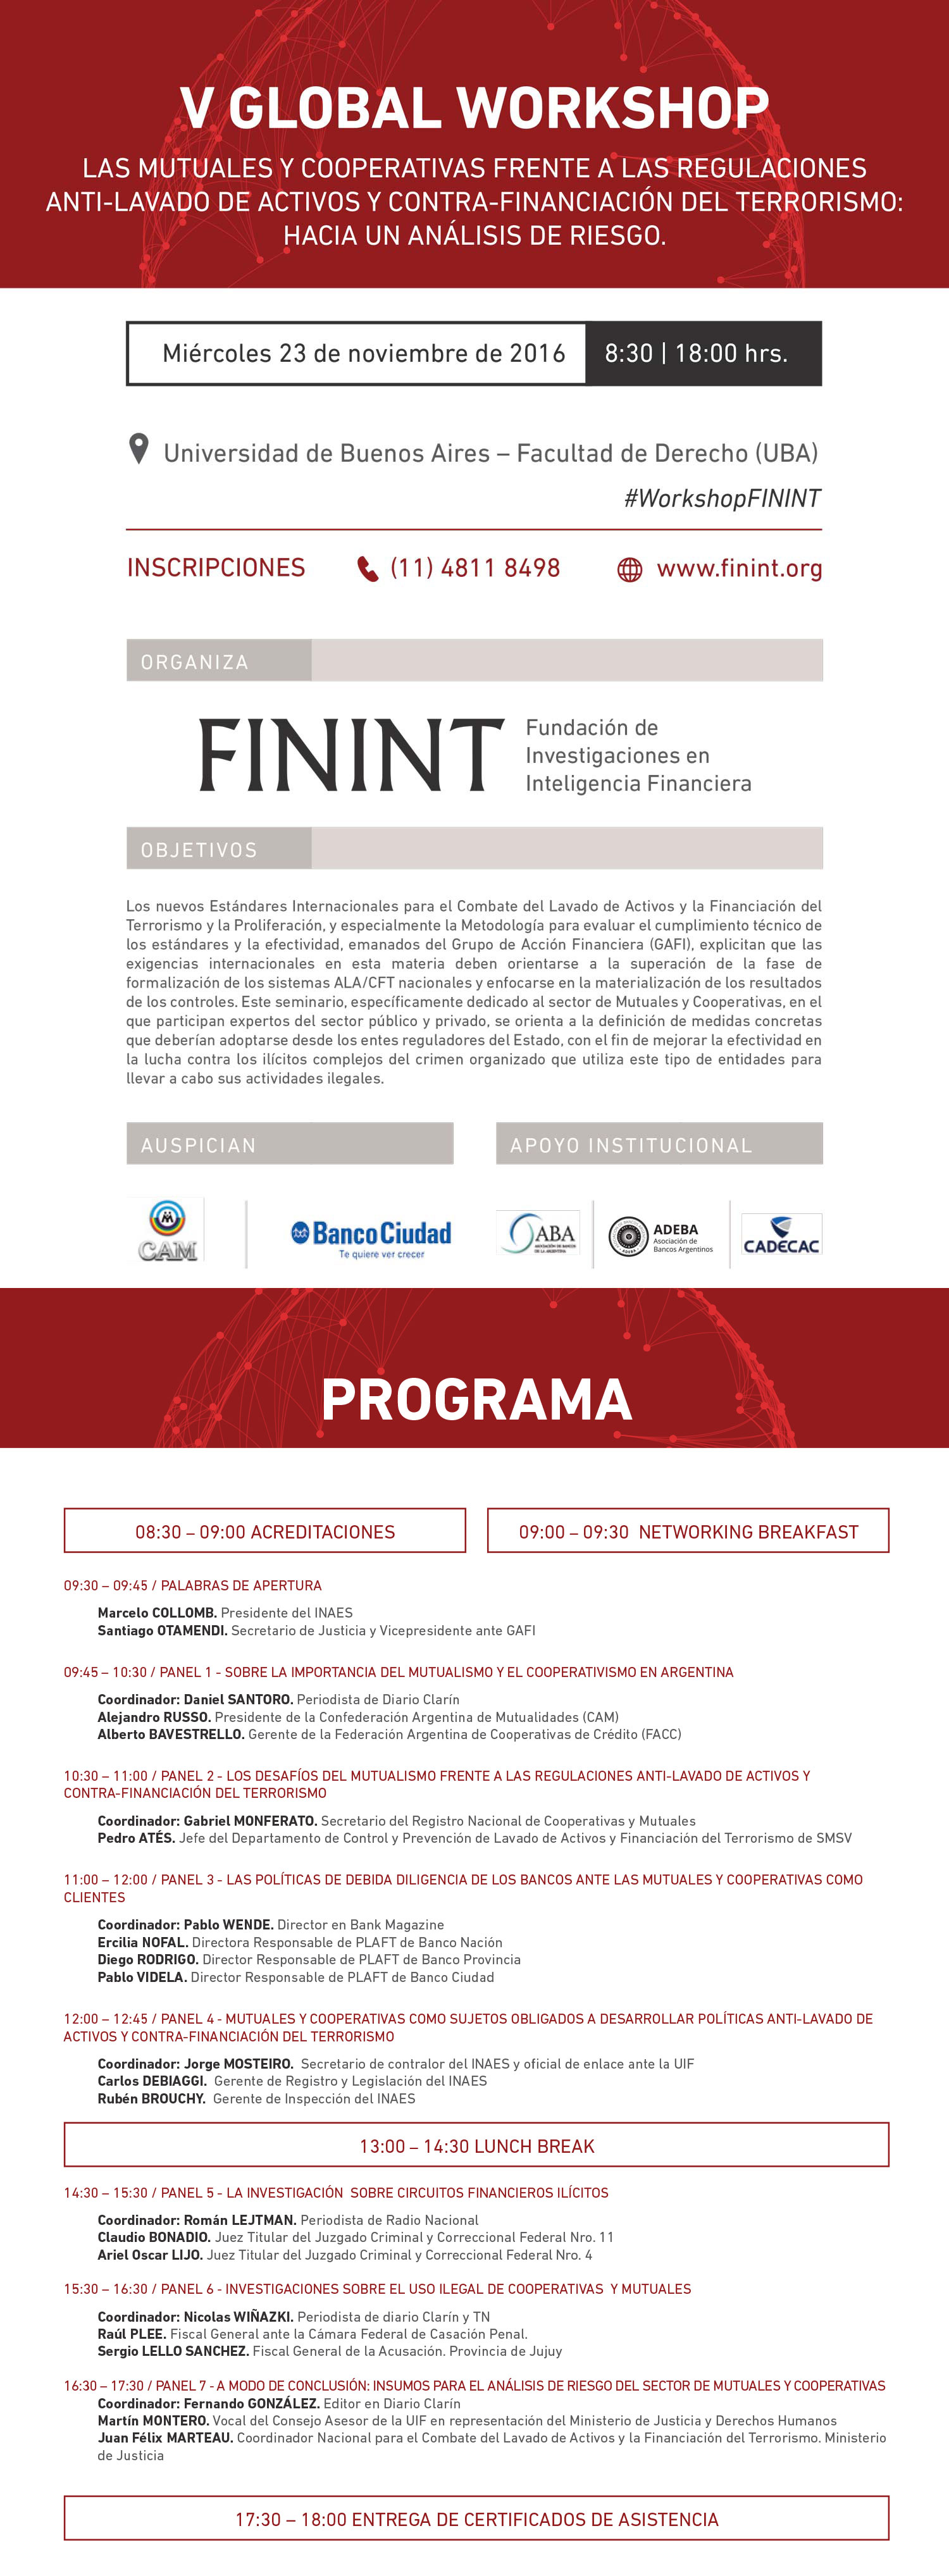 finint-workshop-programa-2016